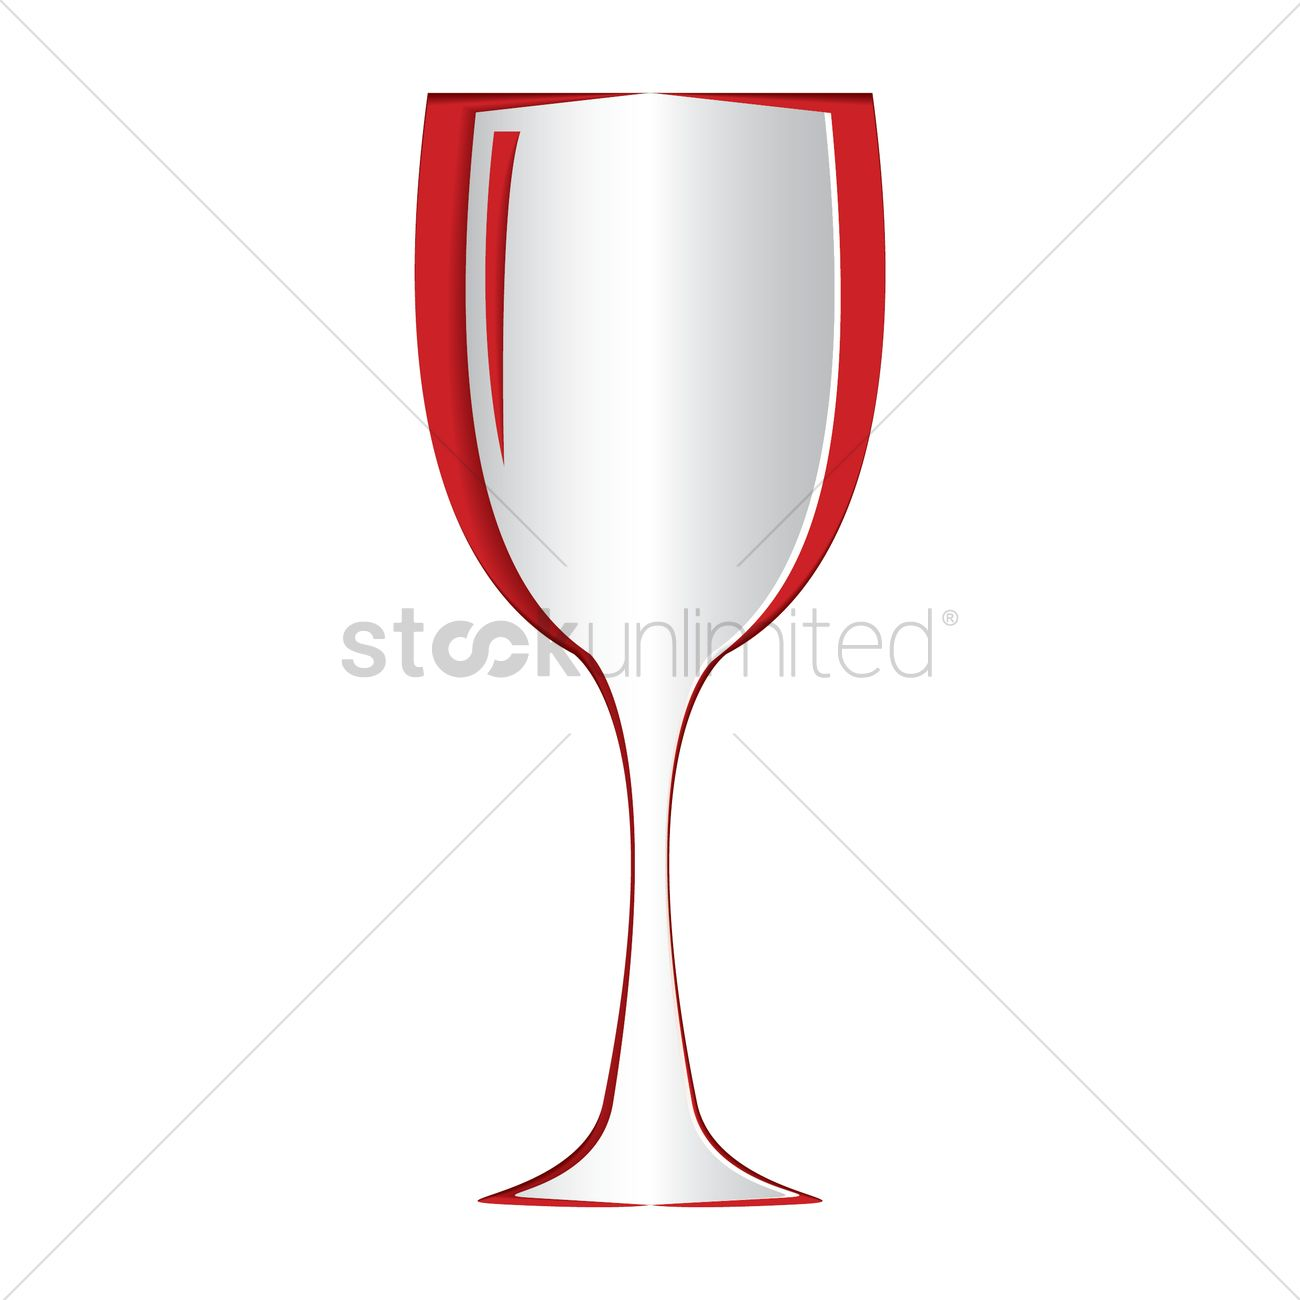 Paper cut out of a wine glass Vector Image.